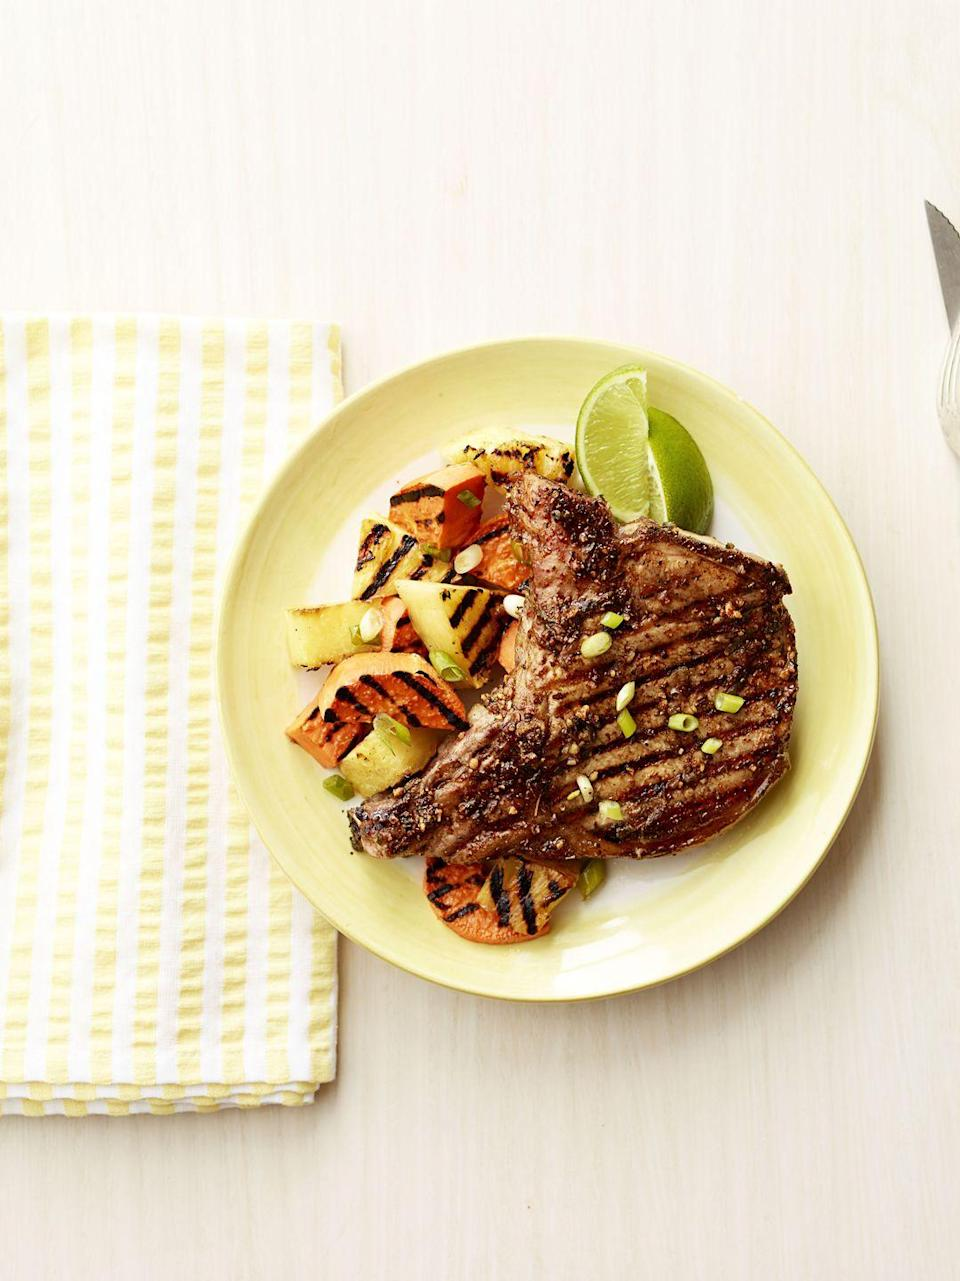 "<p>For maximum flavor, throw a few slices of pineapple and sweet potatoes on the grill. They'll start to caramelize and char, which goes well with a fiery pork chop.</p><p><a href=""https://www.goodhousekeeping.com/food-recipes/a14830/jerk-pork-chops-with-grilled-pineapple-recipe-ghk0913/"" rel=""nofollow noopener"" target=""_blank"" data-ylk=""slk:Get the recipe for Jerk Pork Chops with Grilled Pineapple »"" class=""link rapid-noclick-resp""><em>Get the recipe for Jerk Pork Chops with Grilled Pineapple »</em></a></p>"